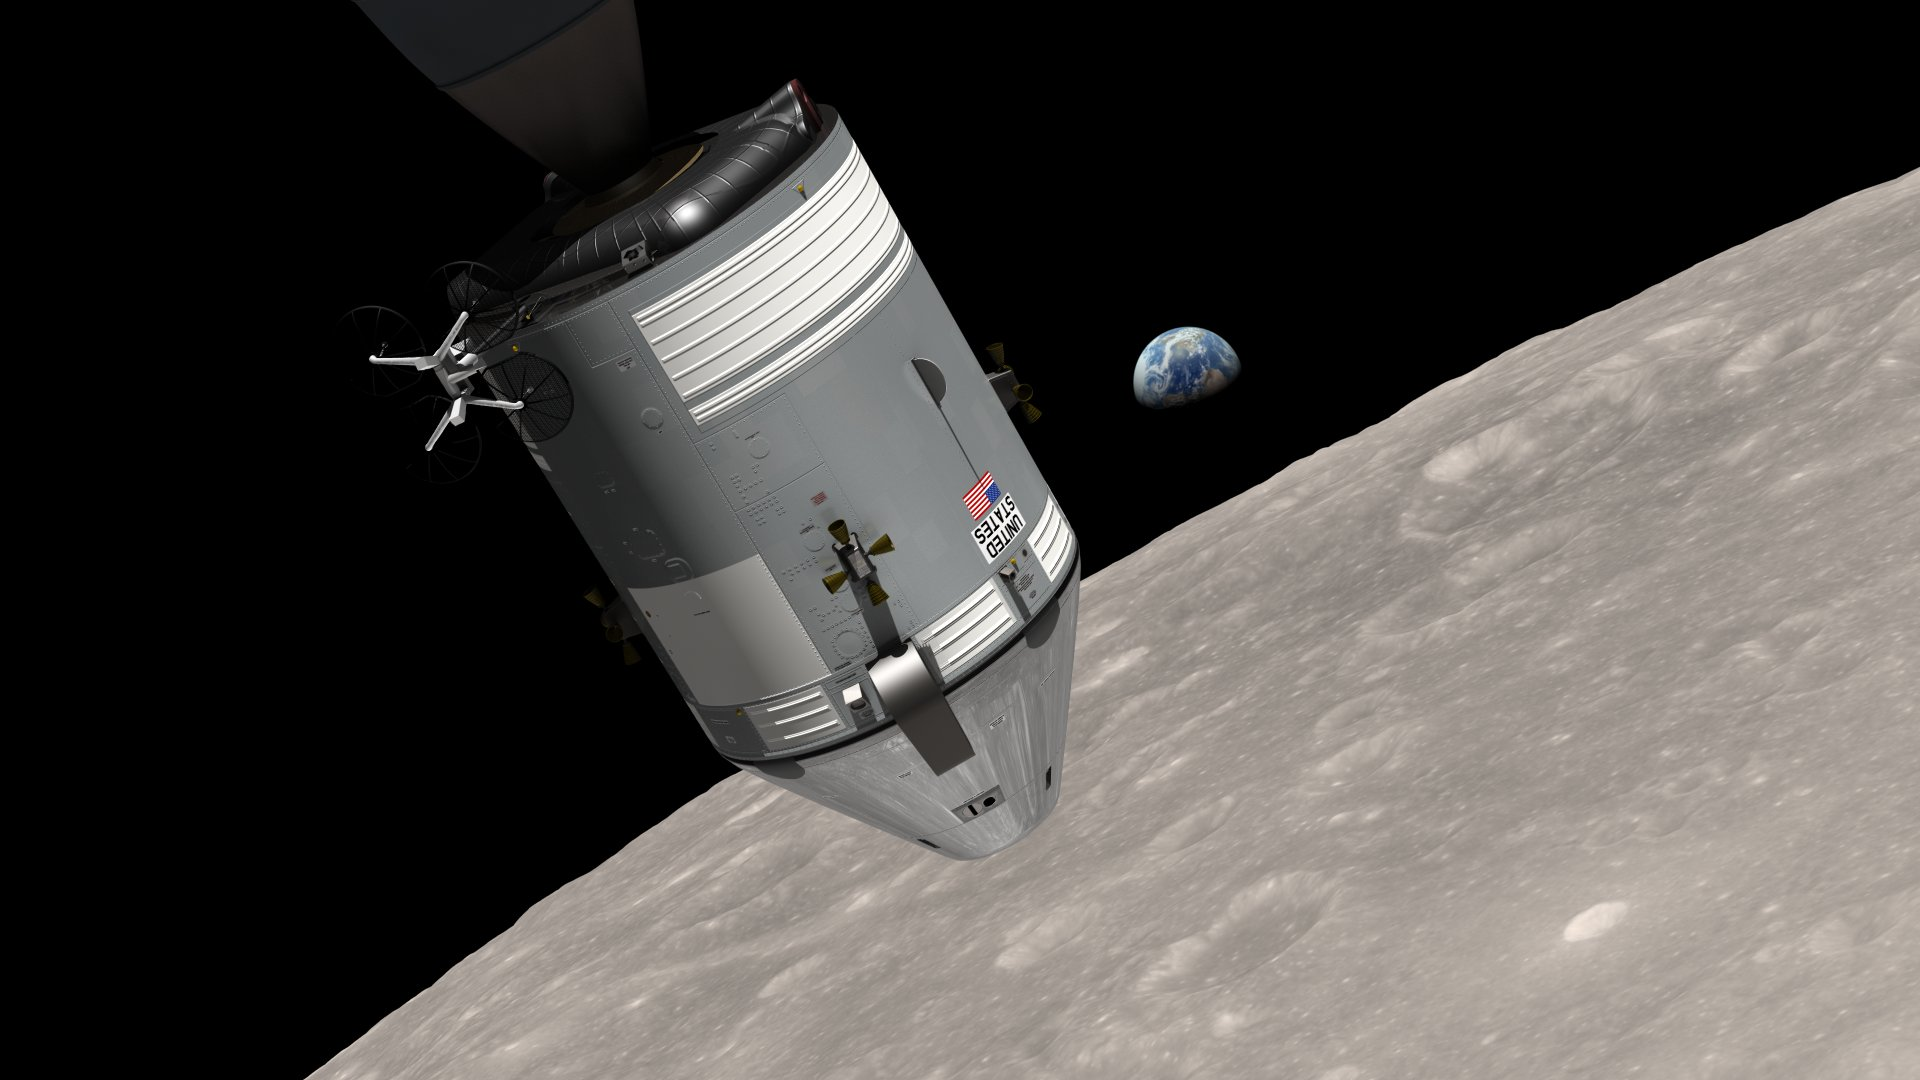 This is a computer-generated visualization of the Apollo 8 spacecraft in orbit around the moon, with Earth rising over the horizon.